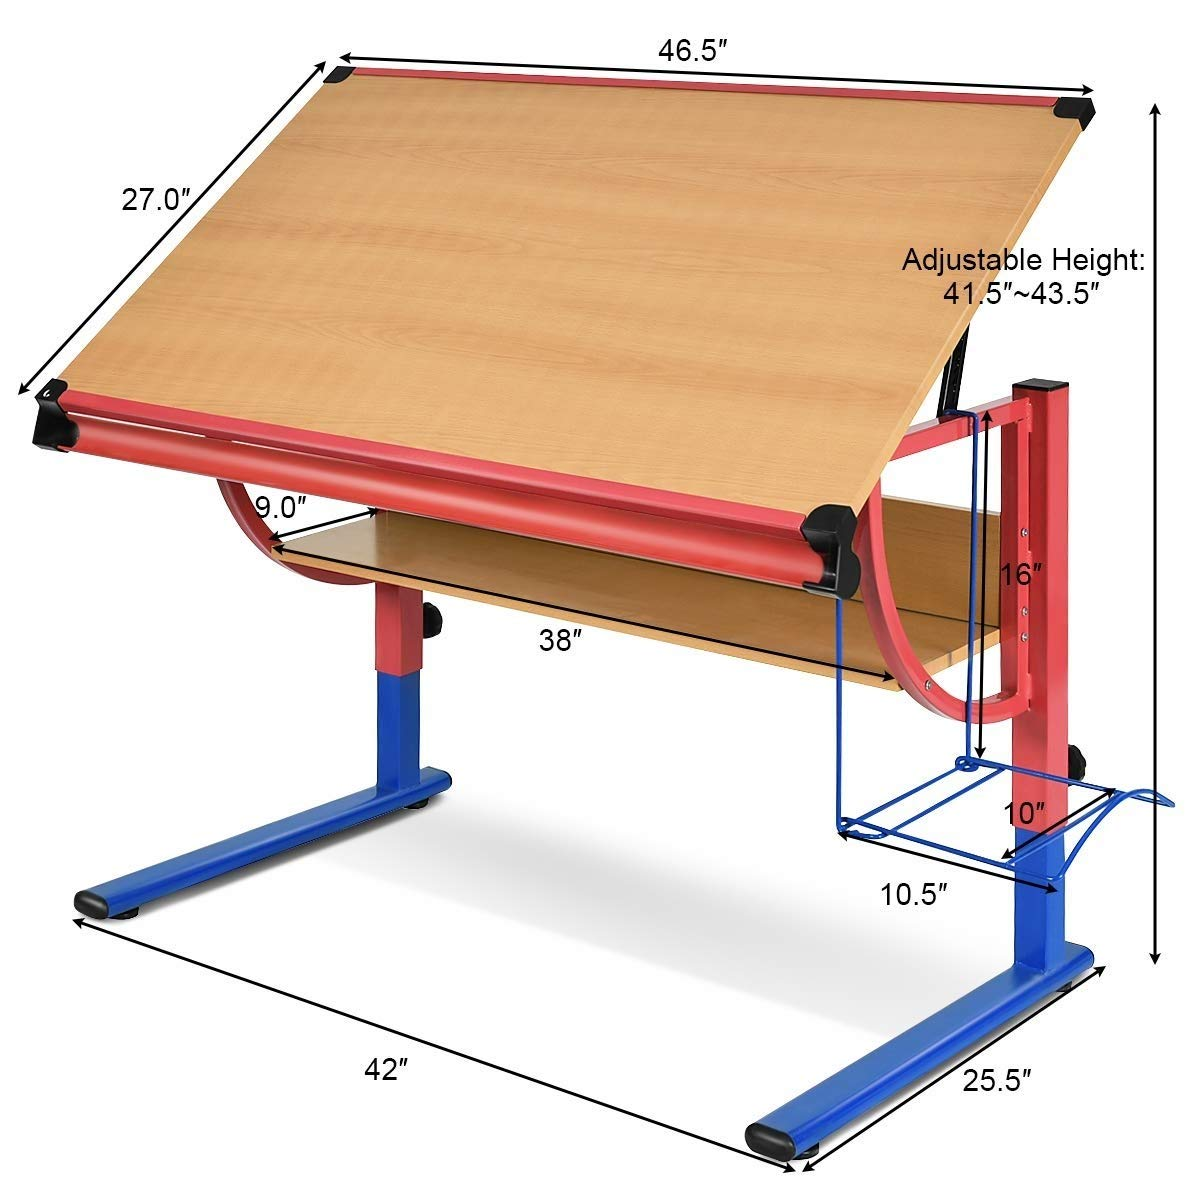 Zwan Adjustable Wooden Drafting Table Workstation Drawing Desk with Ebook